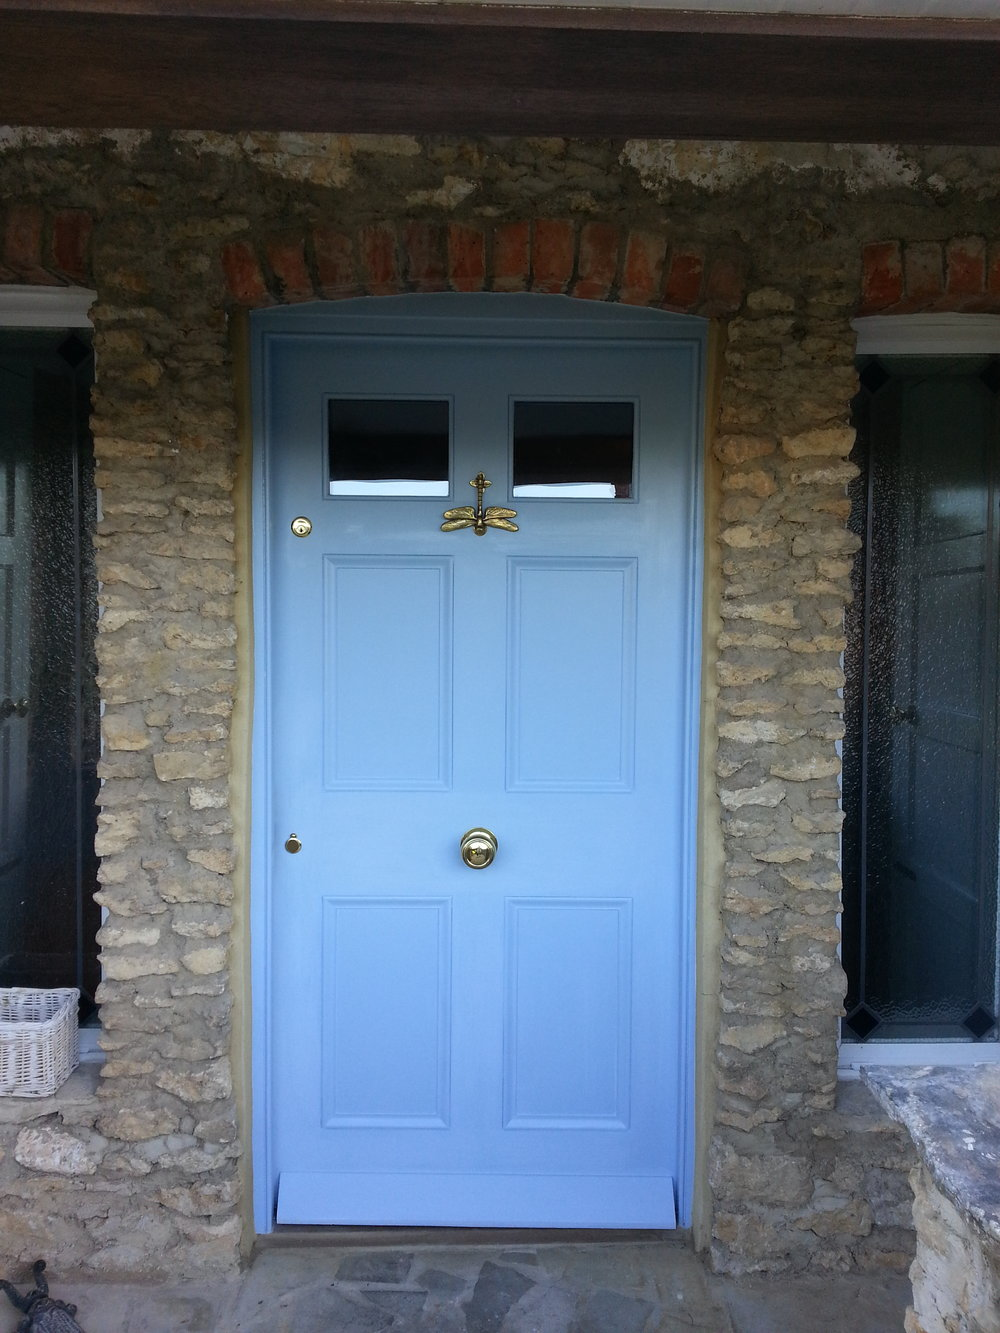 Exterior front door decoration in Stanton Fitzwarren, Swindon, Wiltshire